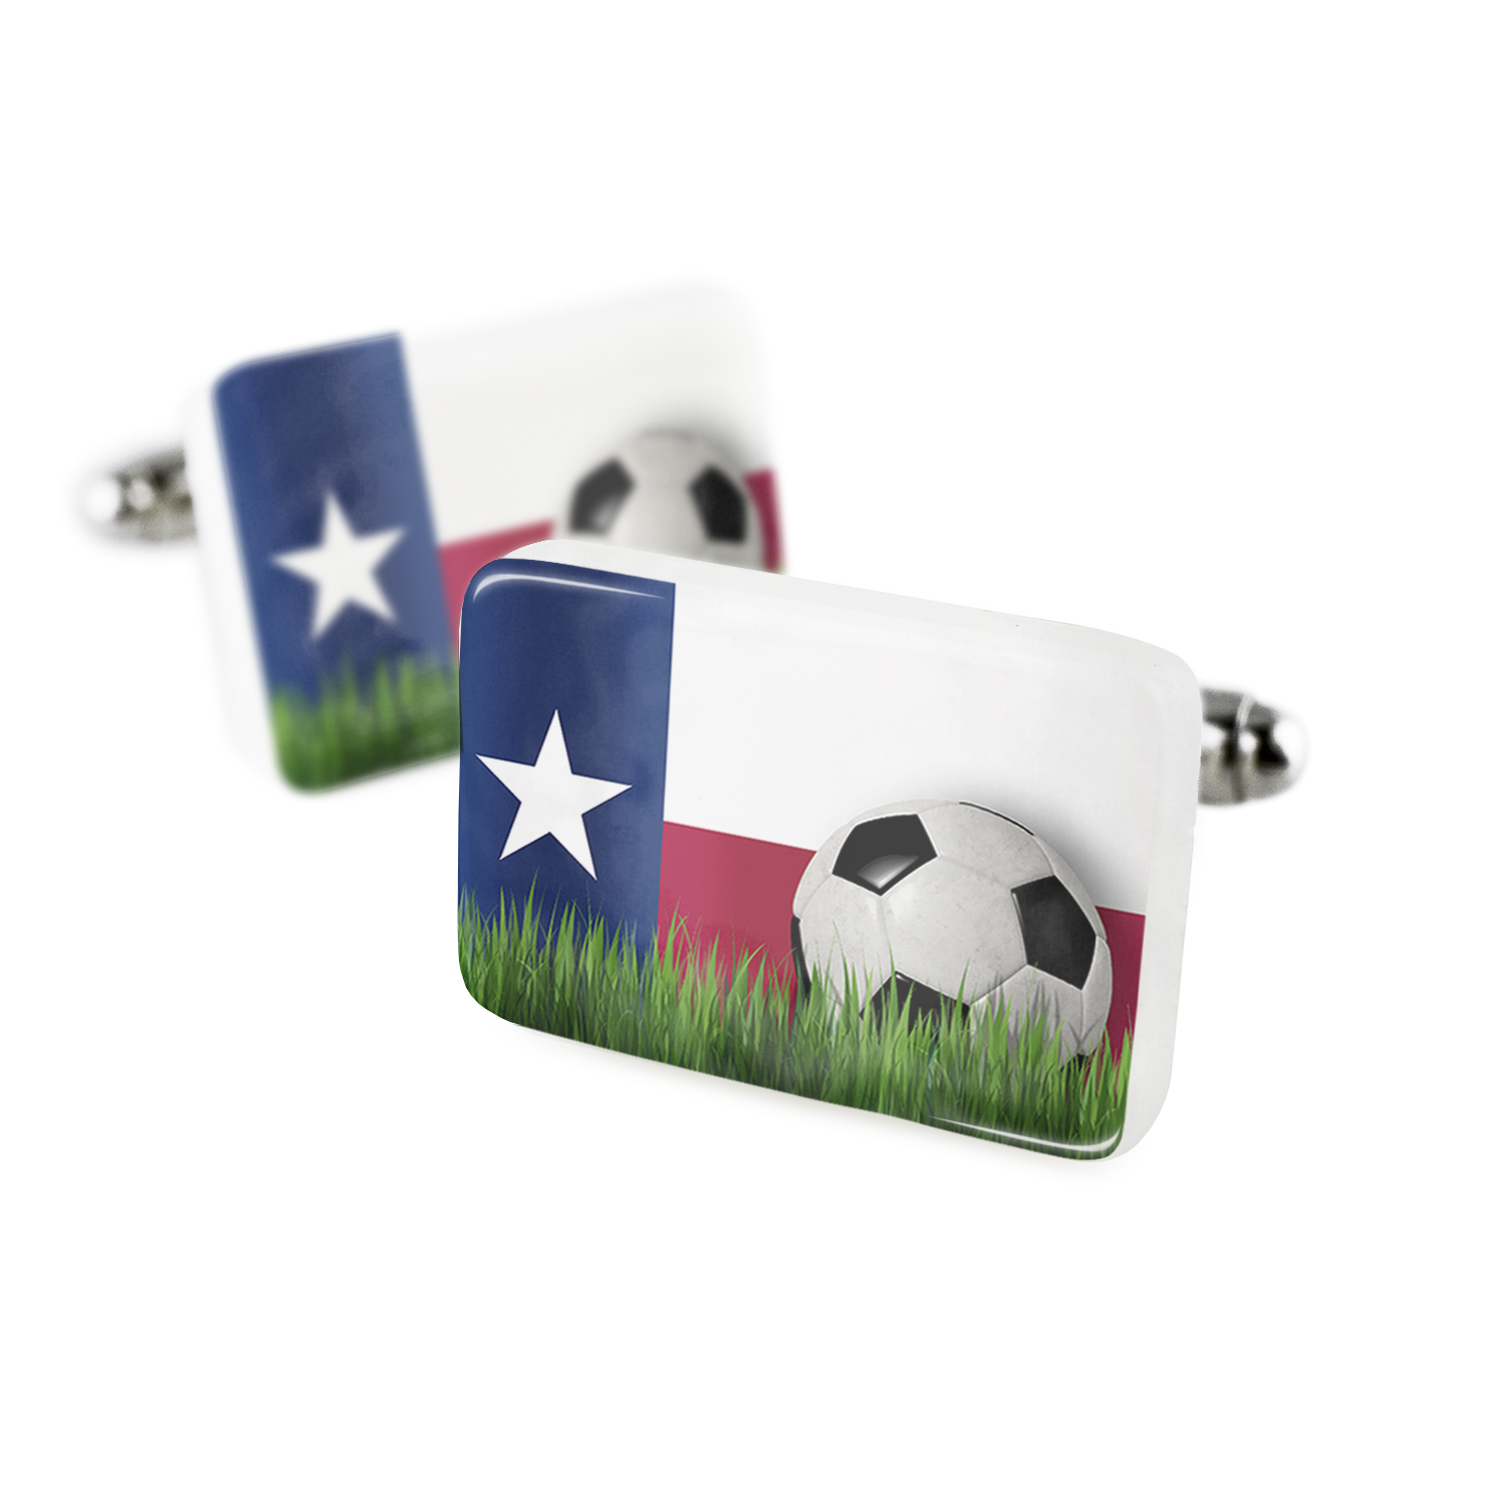 Cufflinks Soccer Team Flag Texas region America (USA) Porcelain Ceramic NEONBLOND